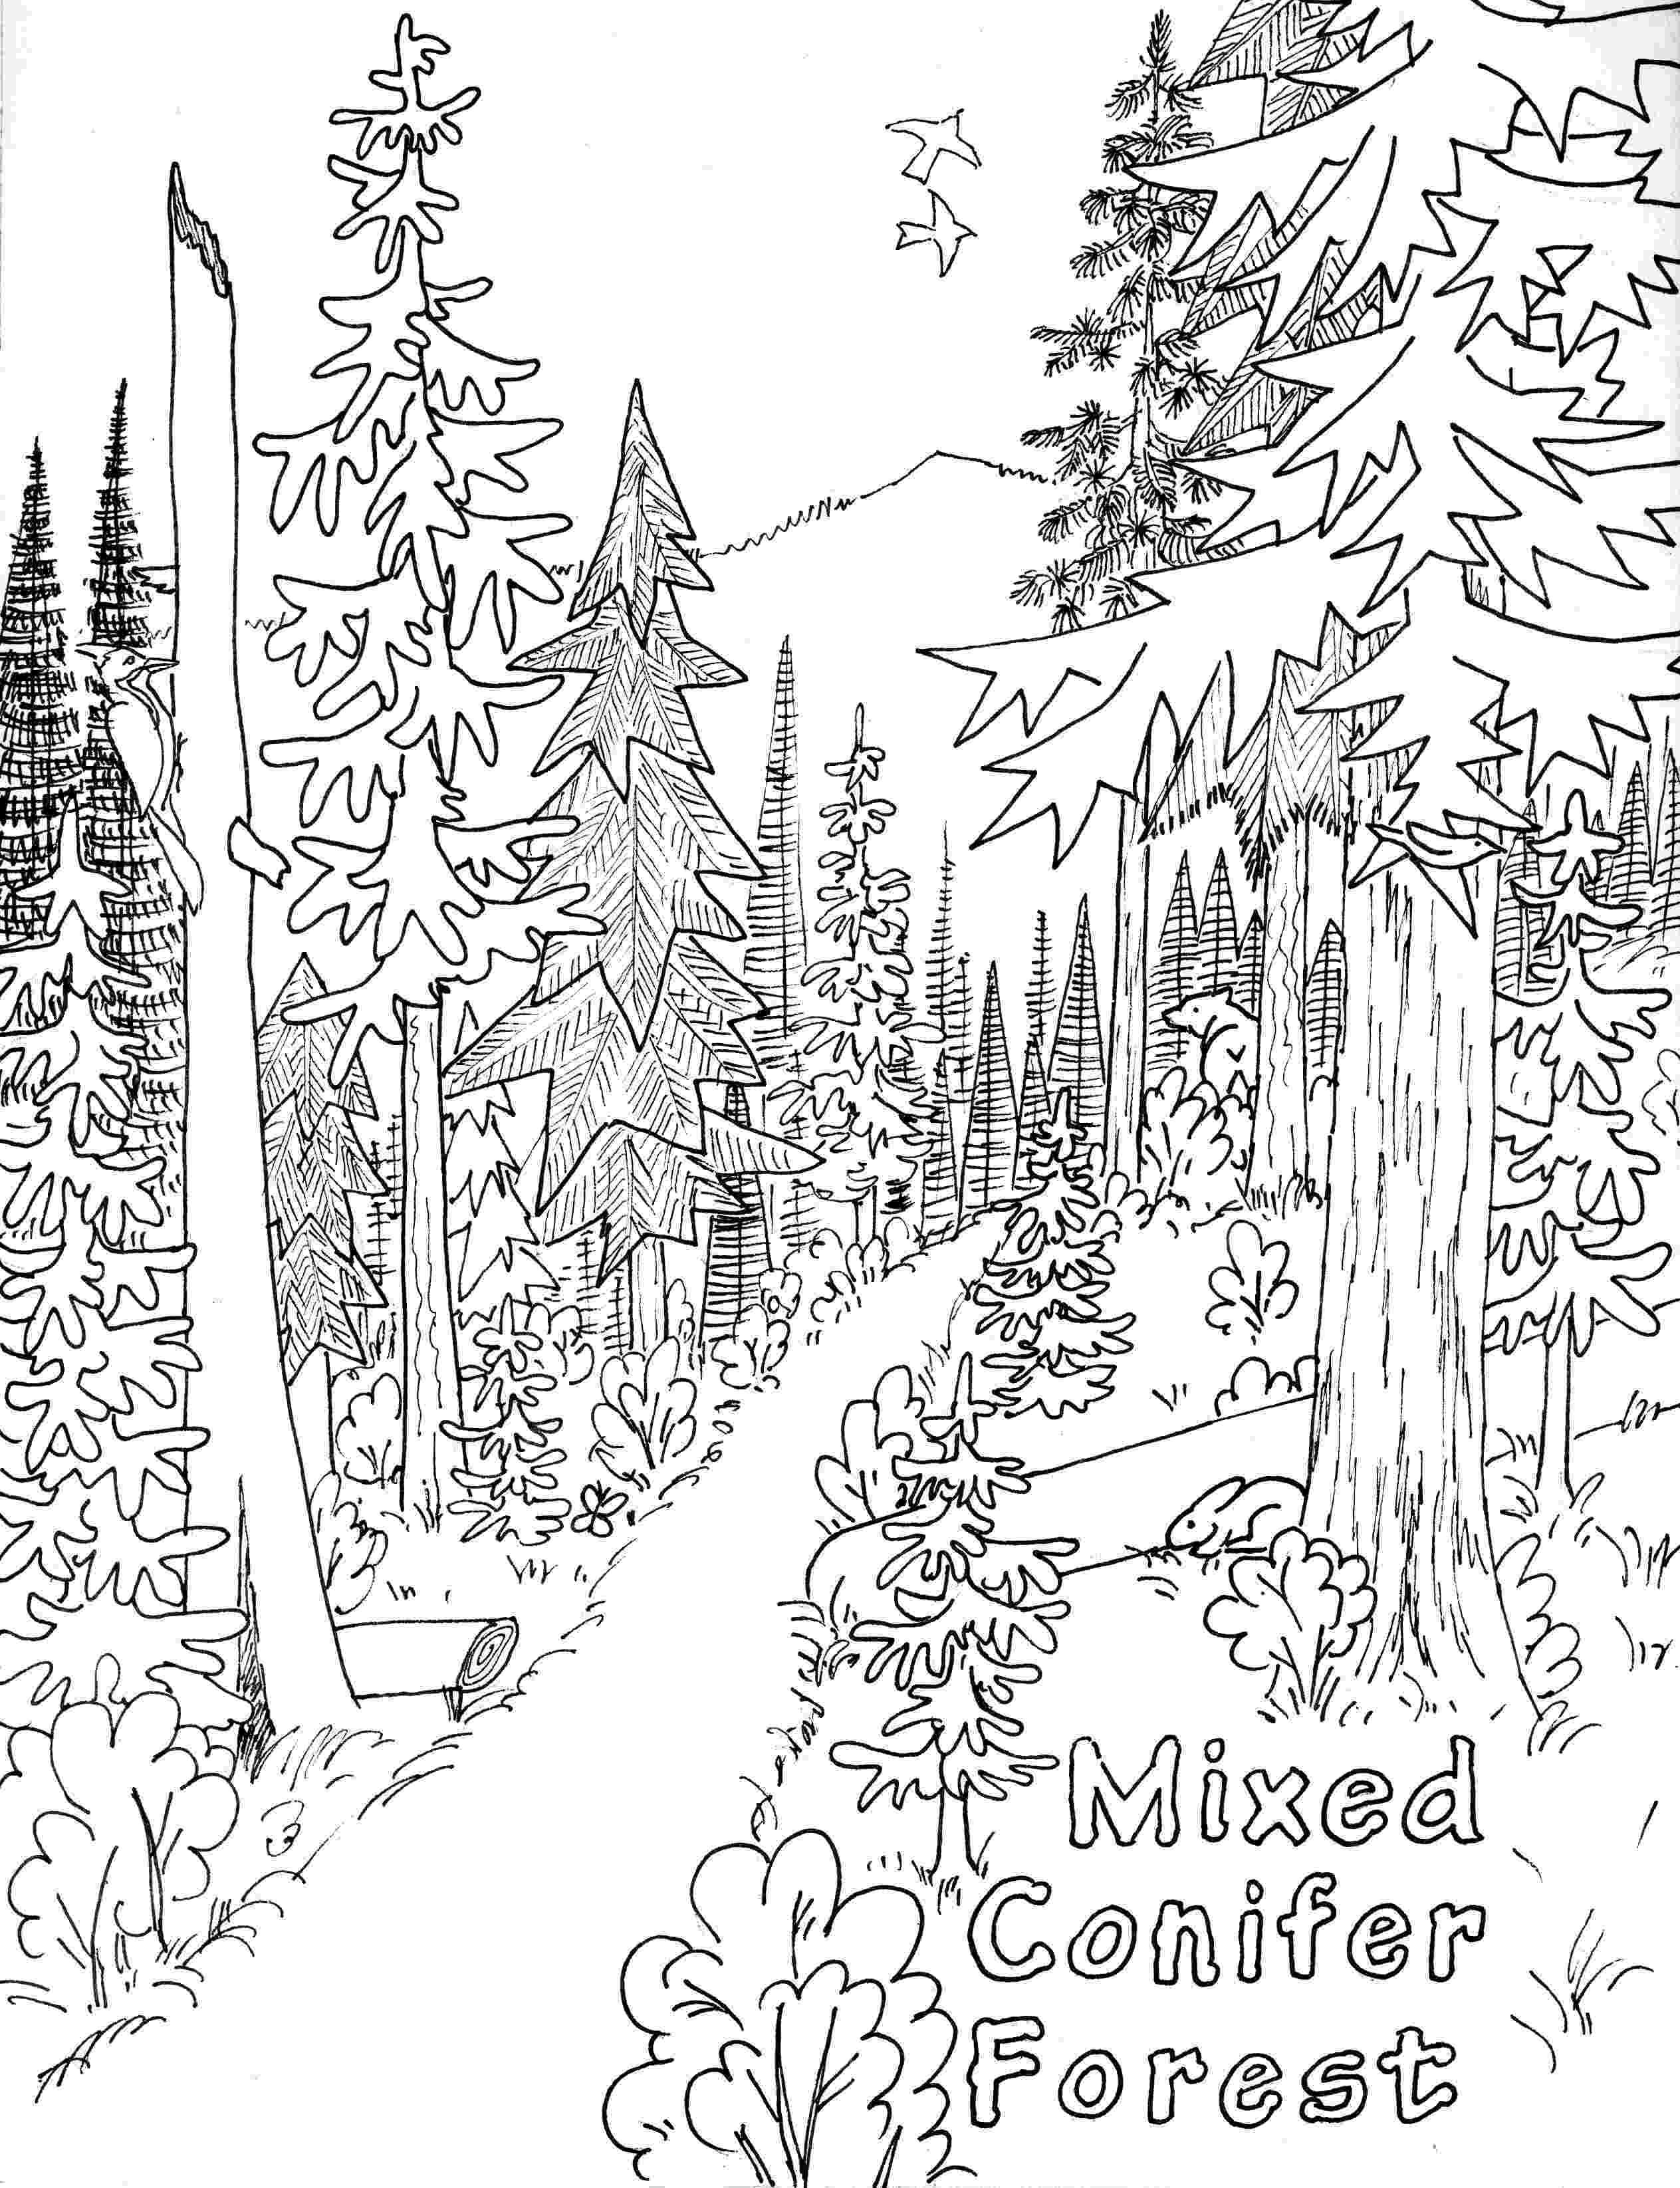 forest coloring sheets free printable nature coloring pages for kids best forest sheets coloring